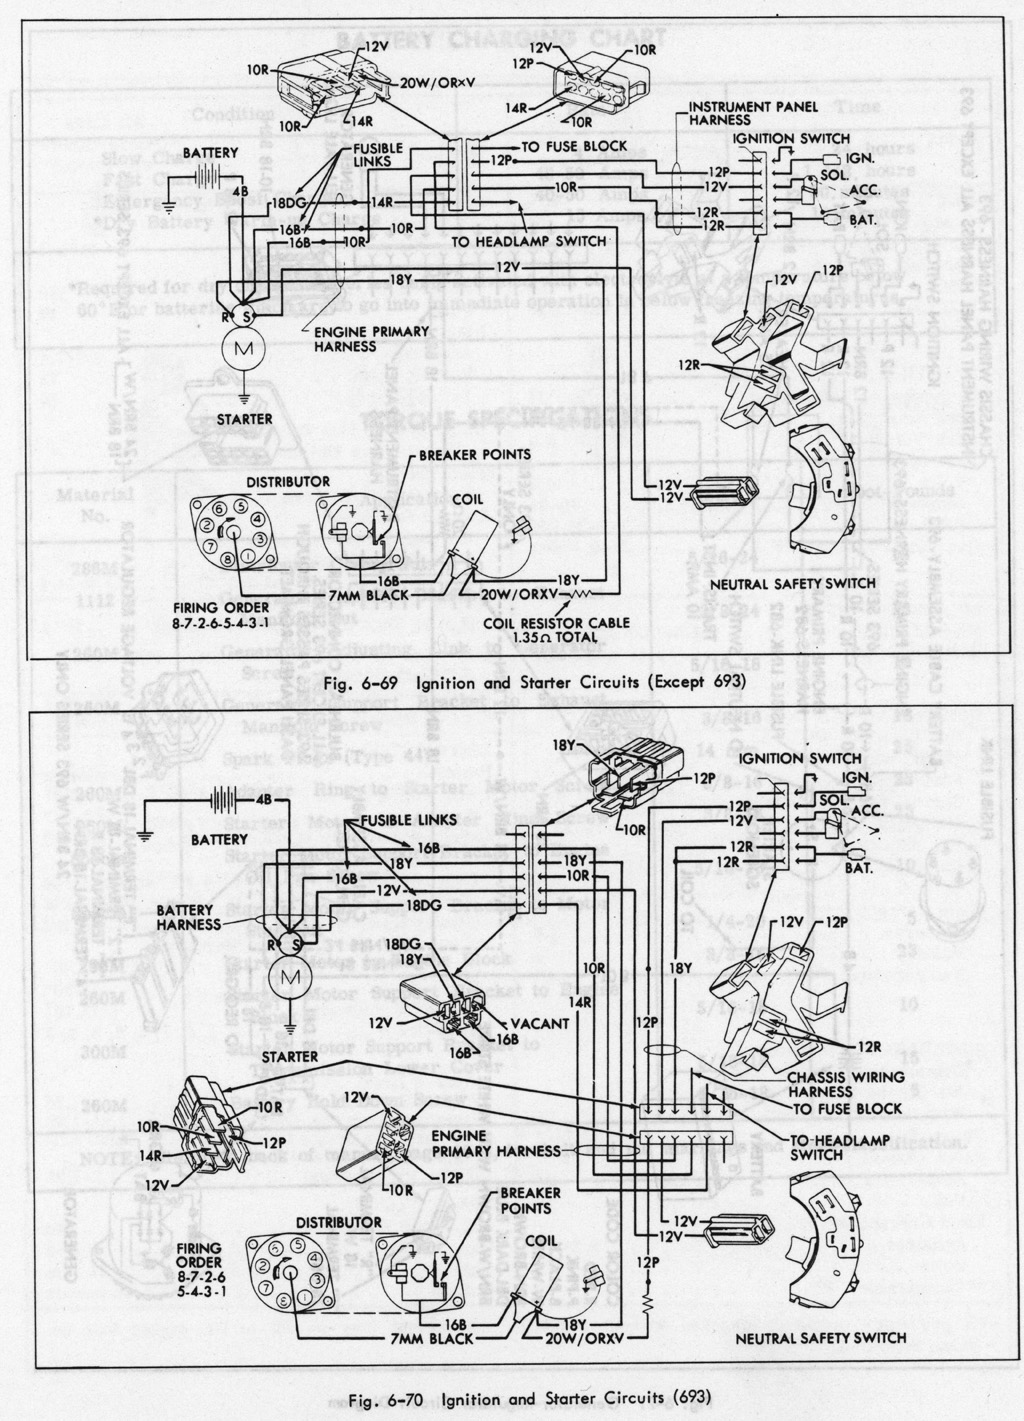 ignition_starter diagram 1969 firebird wiring diagram & 1969 firebird wiring diagram rear 1967 firebird wiring diagram at suagrazia.org